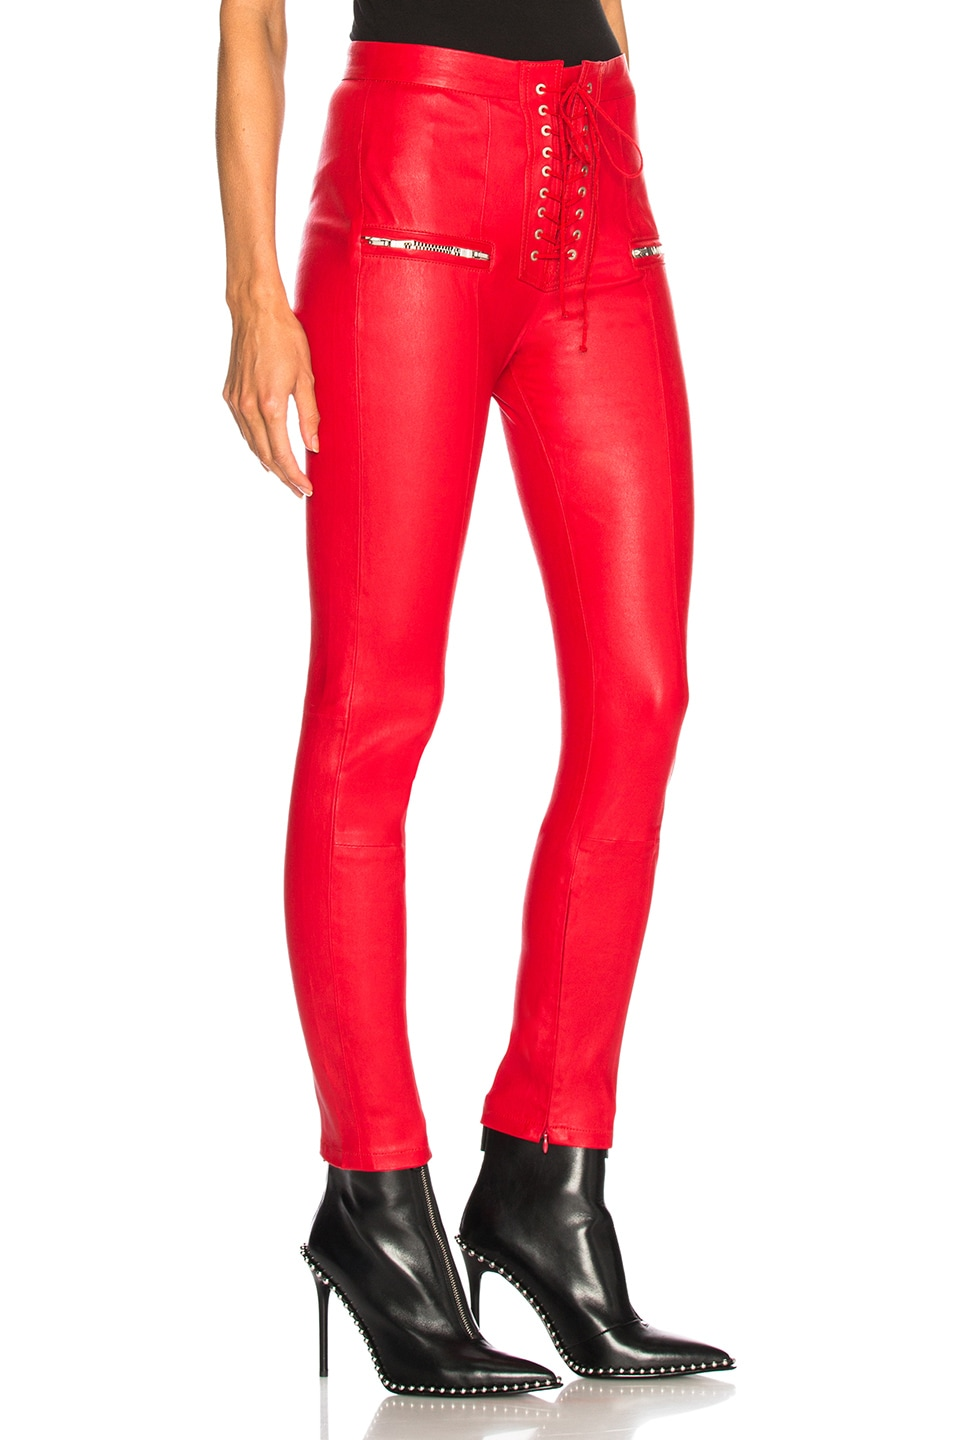 Image 2 of Unravel Leather Lace Up Seam Pants in Red